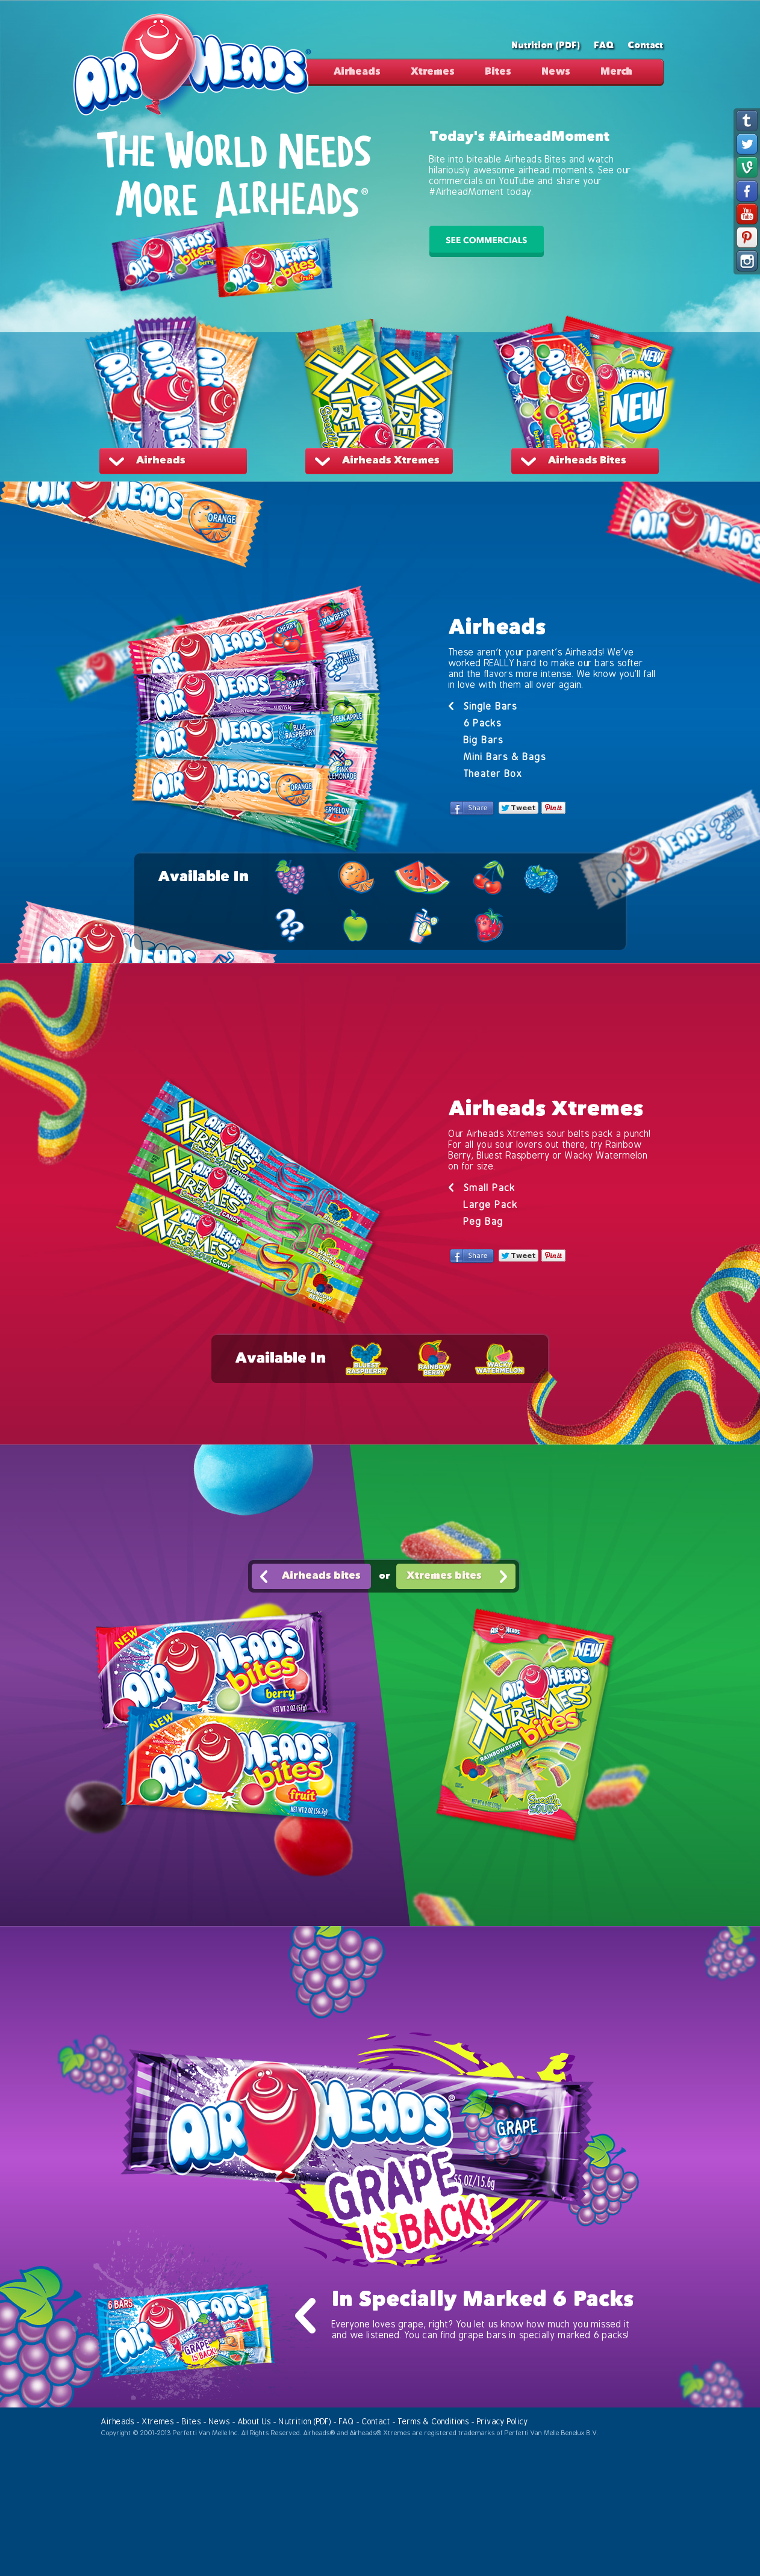 Airheads Candy Competitors, Revenue and Employees - Owler